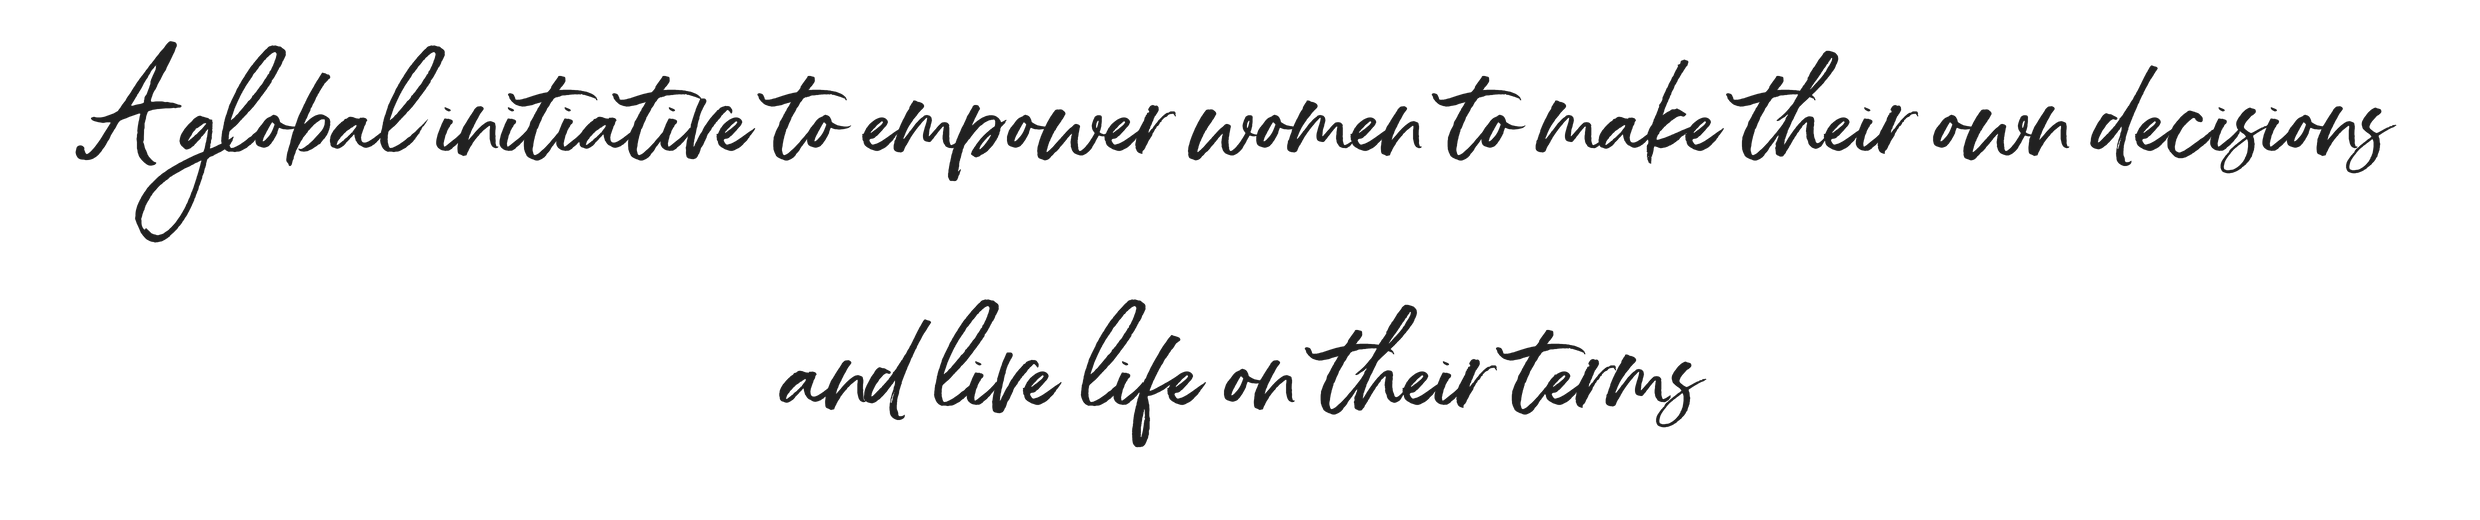 A global initiative to empower women to make their own decisions and live life on their terms.png